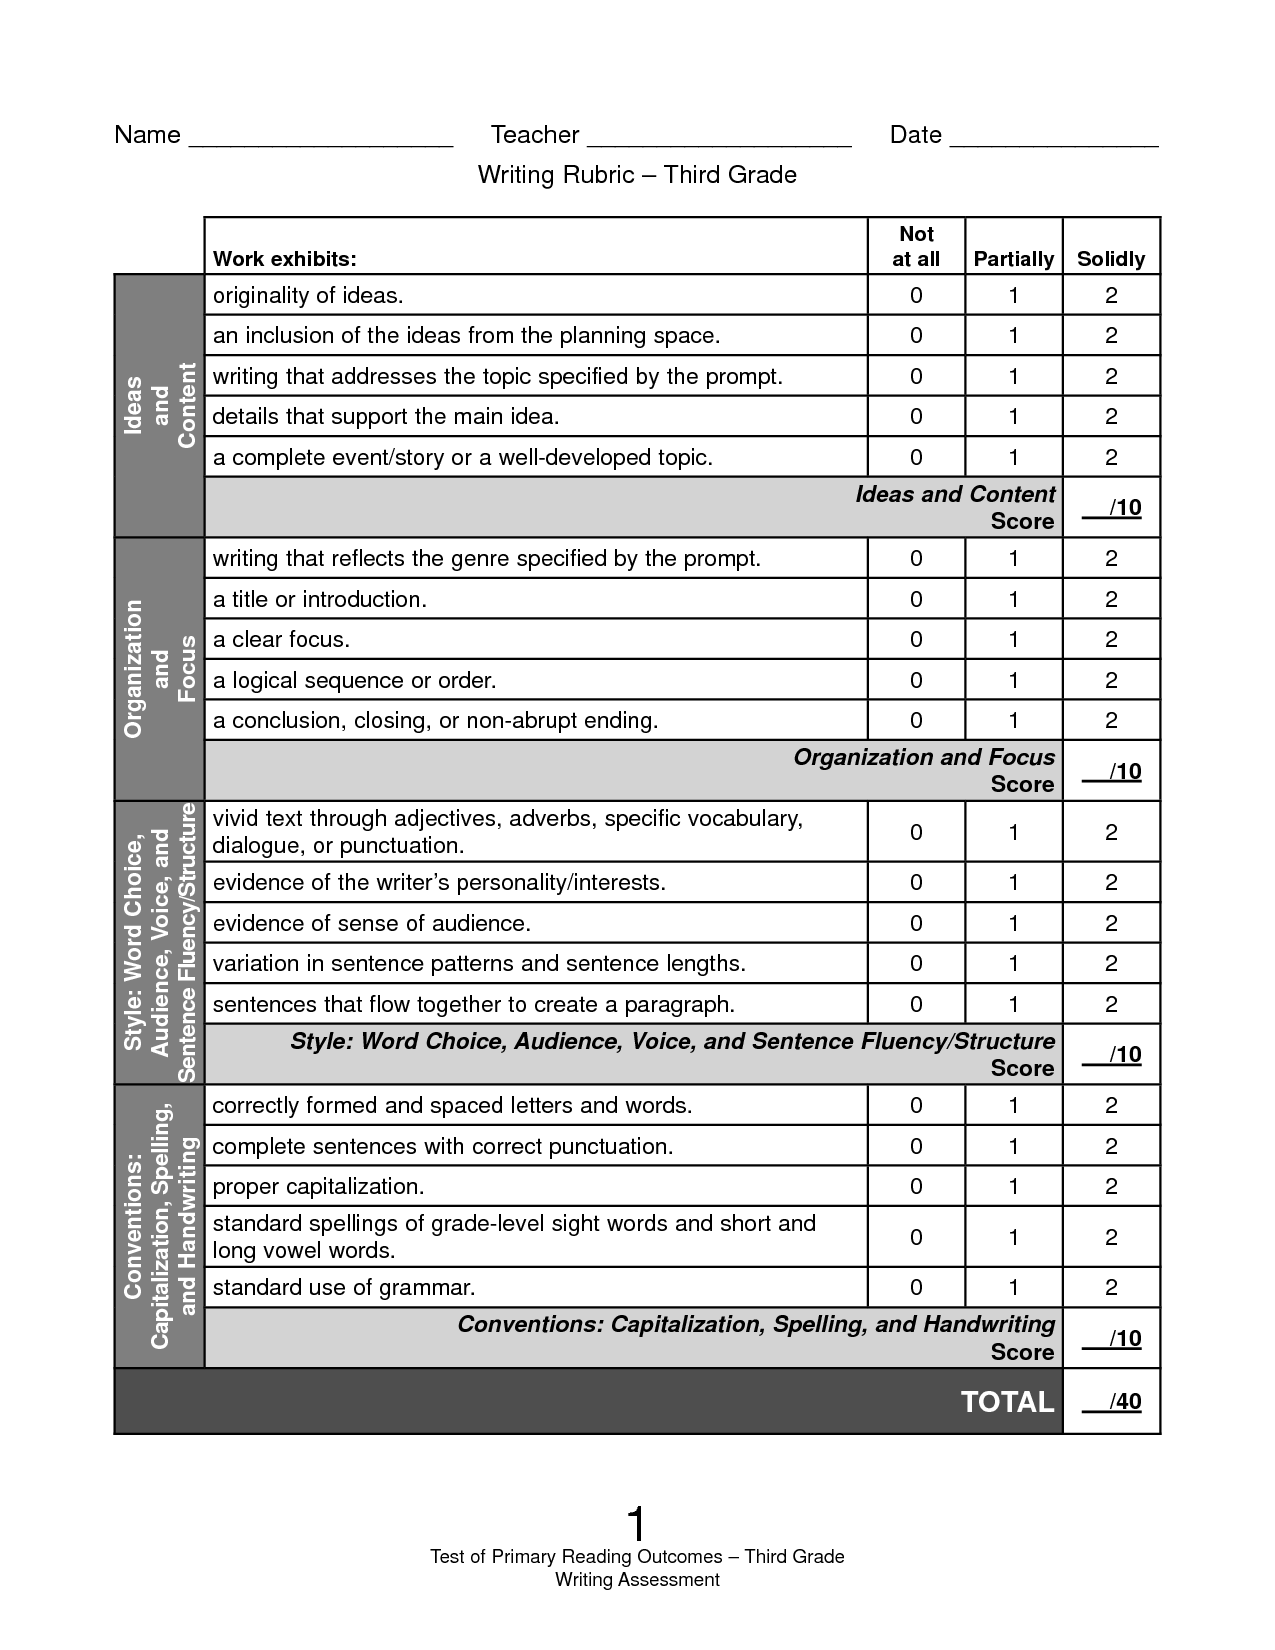 Letter of application and resume rubric